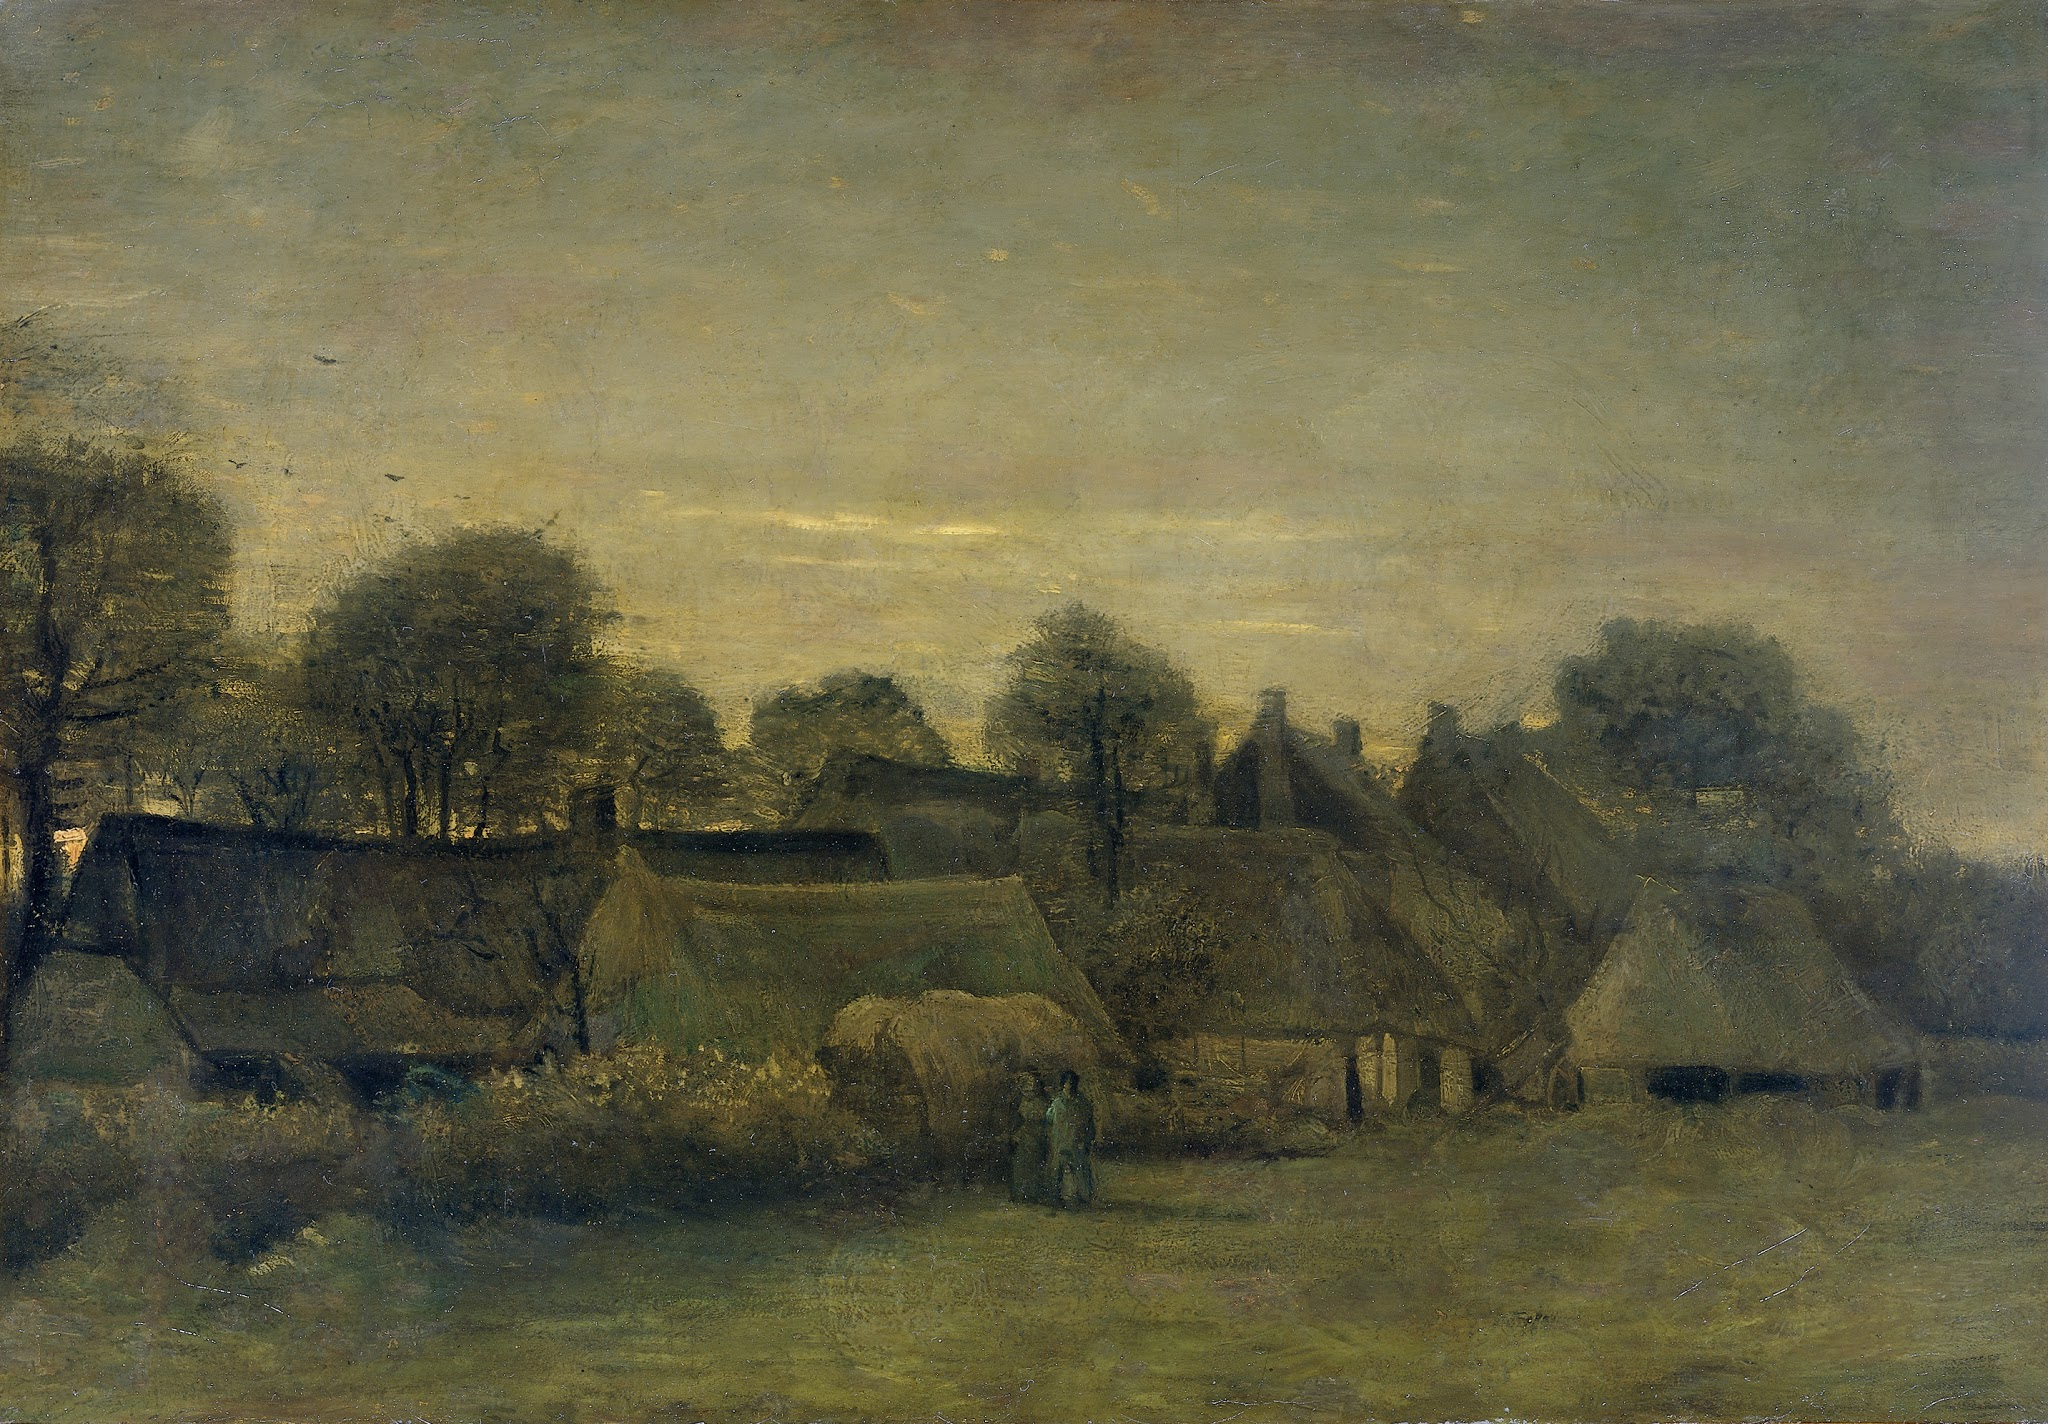 Village at Sunset by Vincent van Gogh